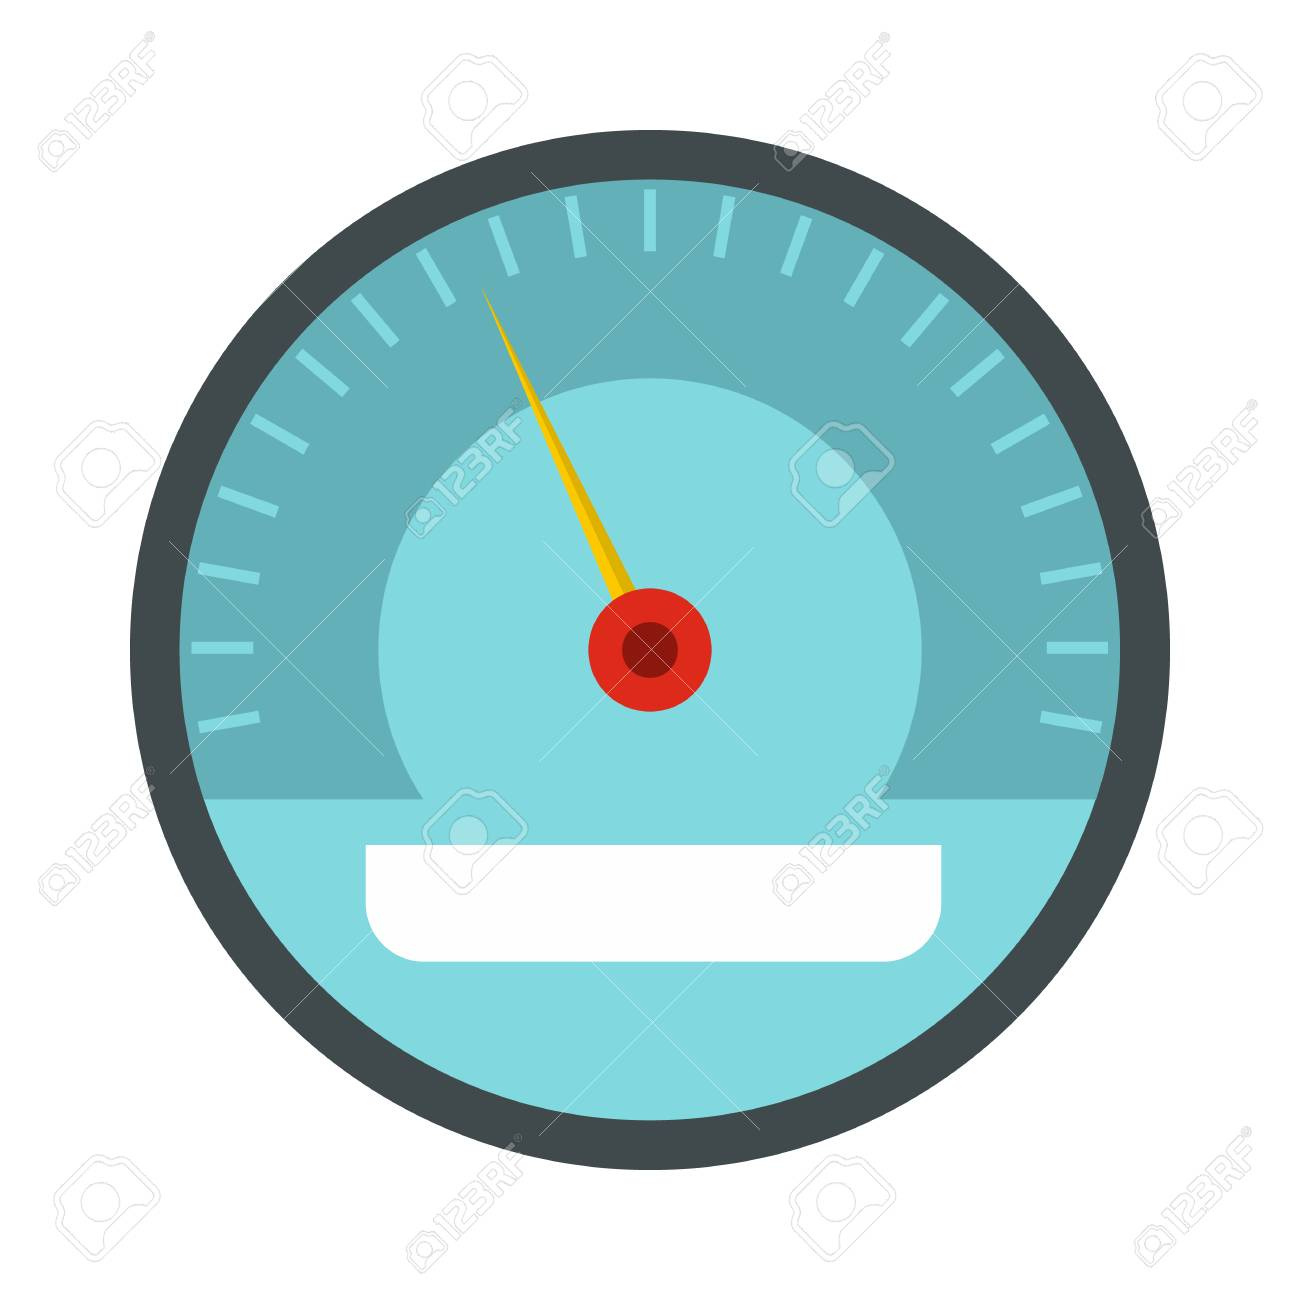 speedometer icon in flat style on a white background royalty free rh 123rf com speedometer vector or scalar speedometer vector or scalar